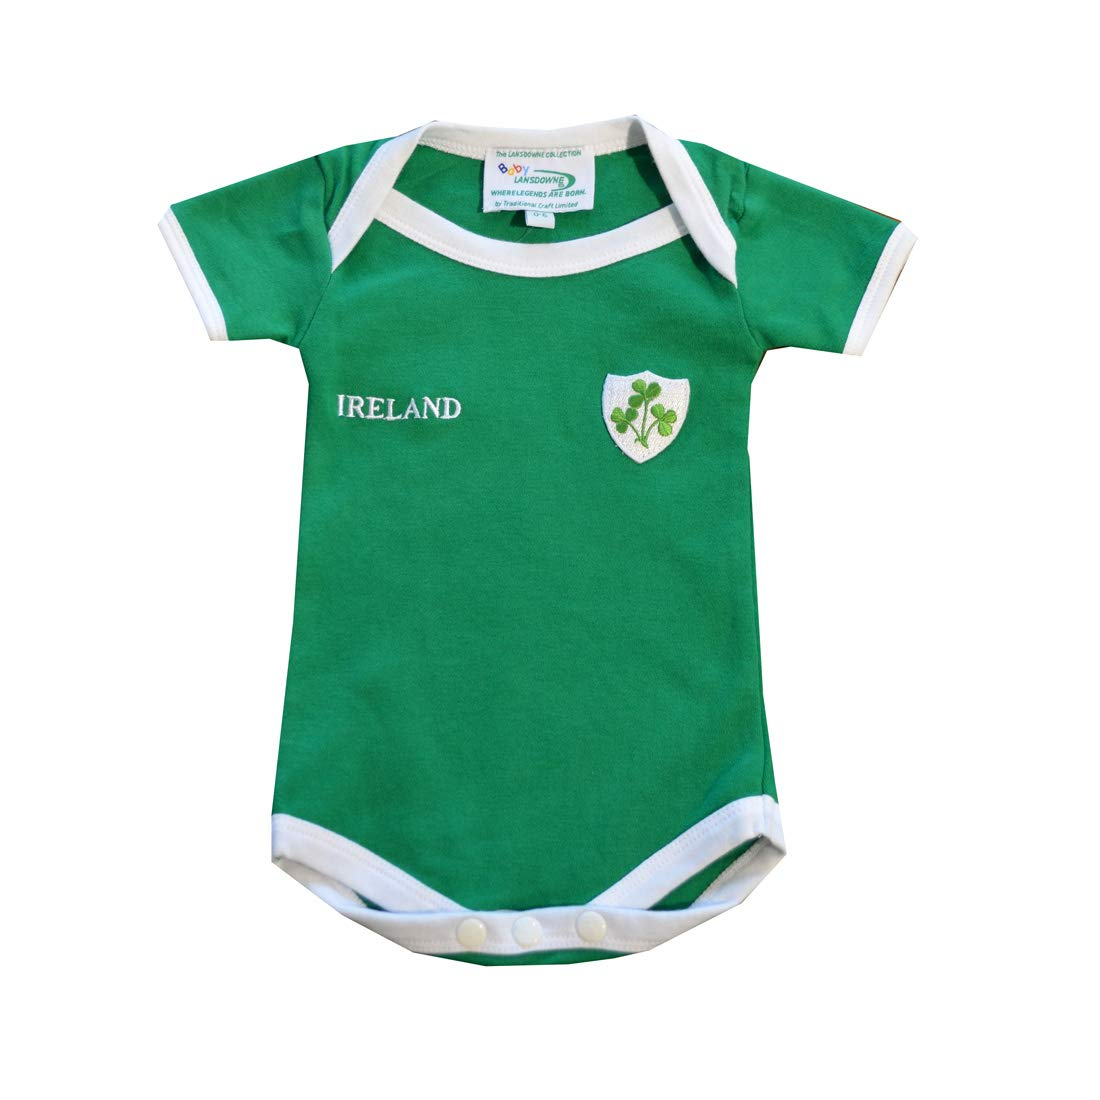 Green Ireland Rugby Vest Designed With A Small Ireland Print And Shamrock Badge Lansdowne